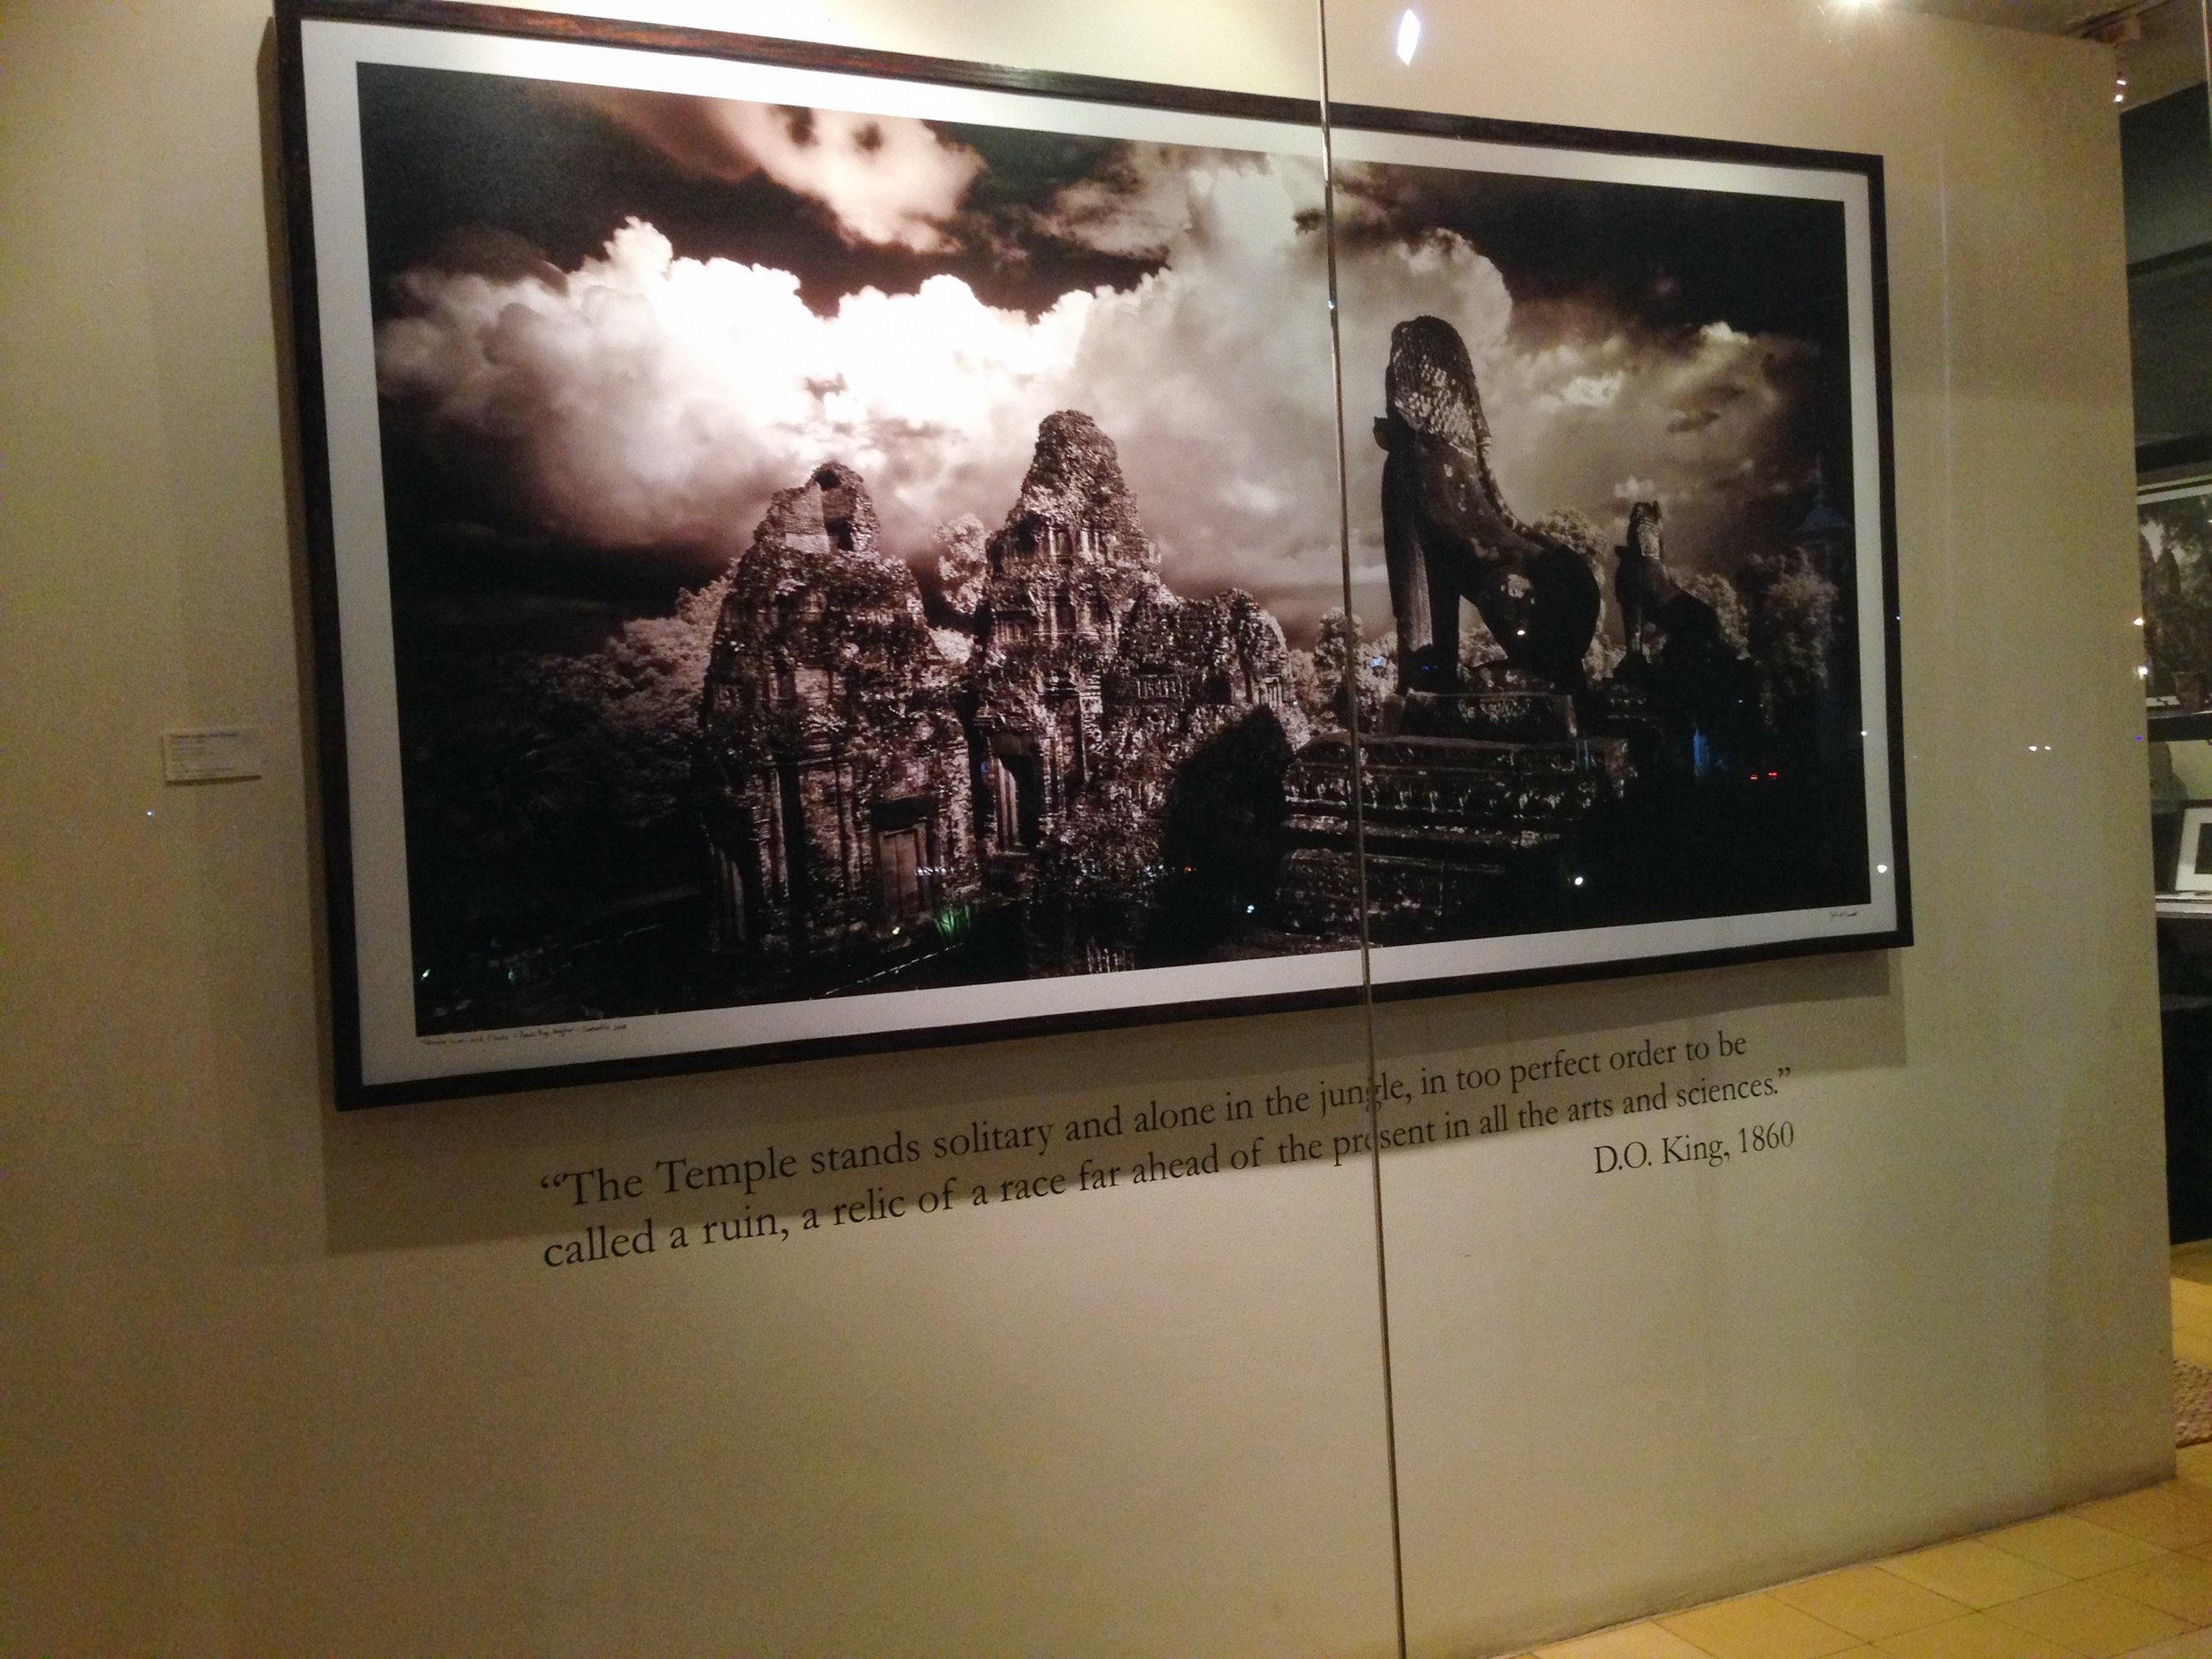 beautiful image and quote about angkor wat at the mcdermott gallery